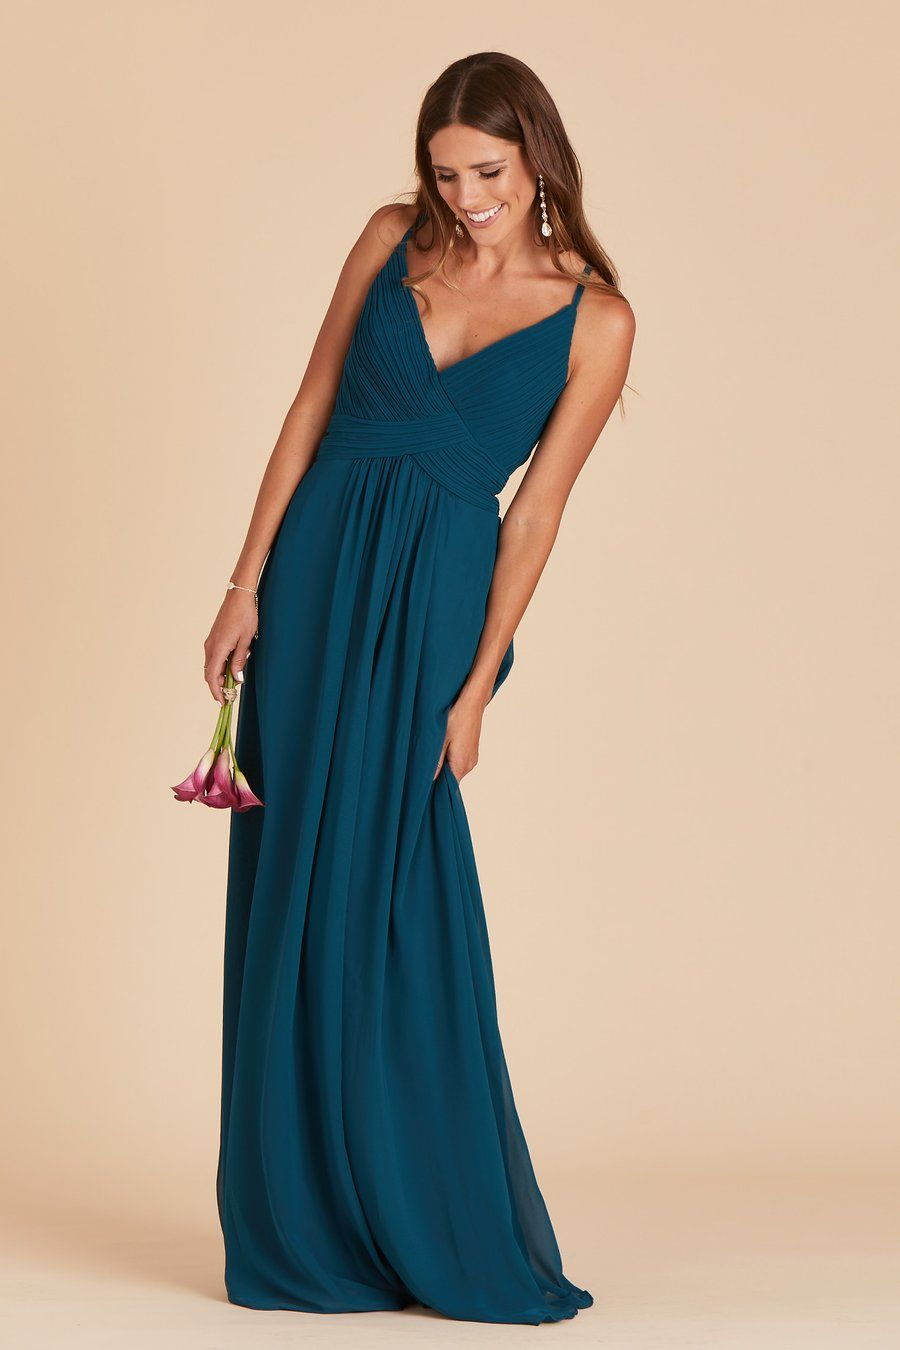 499e039c28a7b Mikey Dress - Peacock in 2019 | EMERALD GOWNS | Dresses, Bridesmaid ...